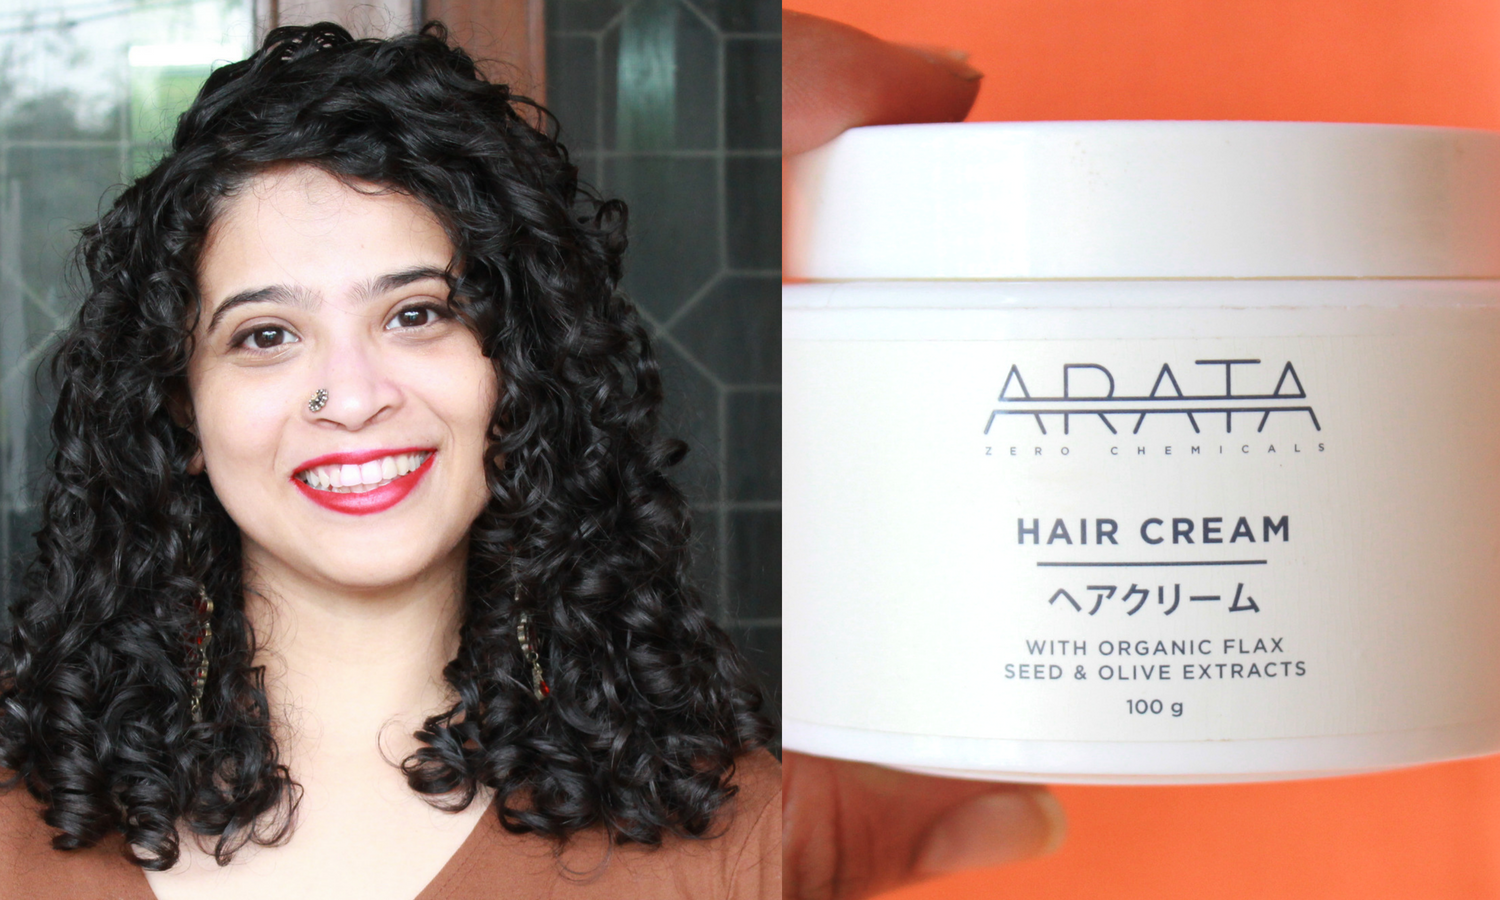 Arata Zero Chemicals Hair Cream